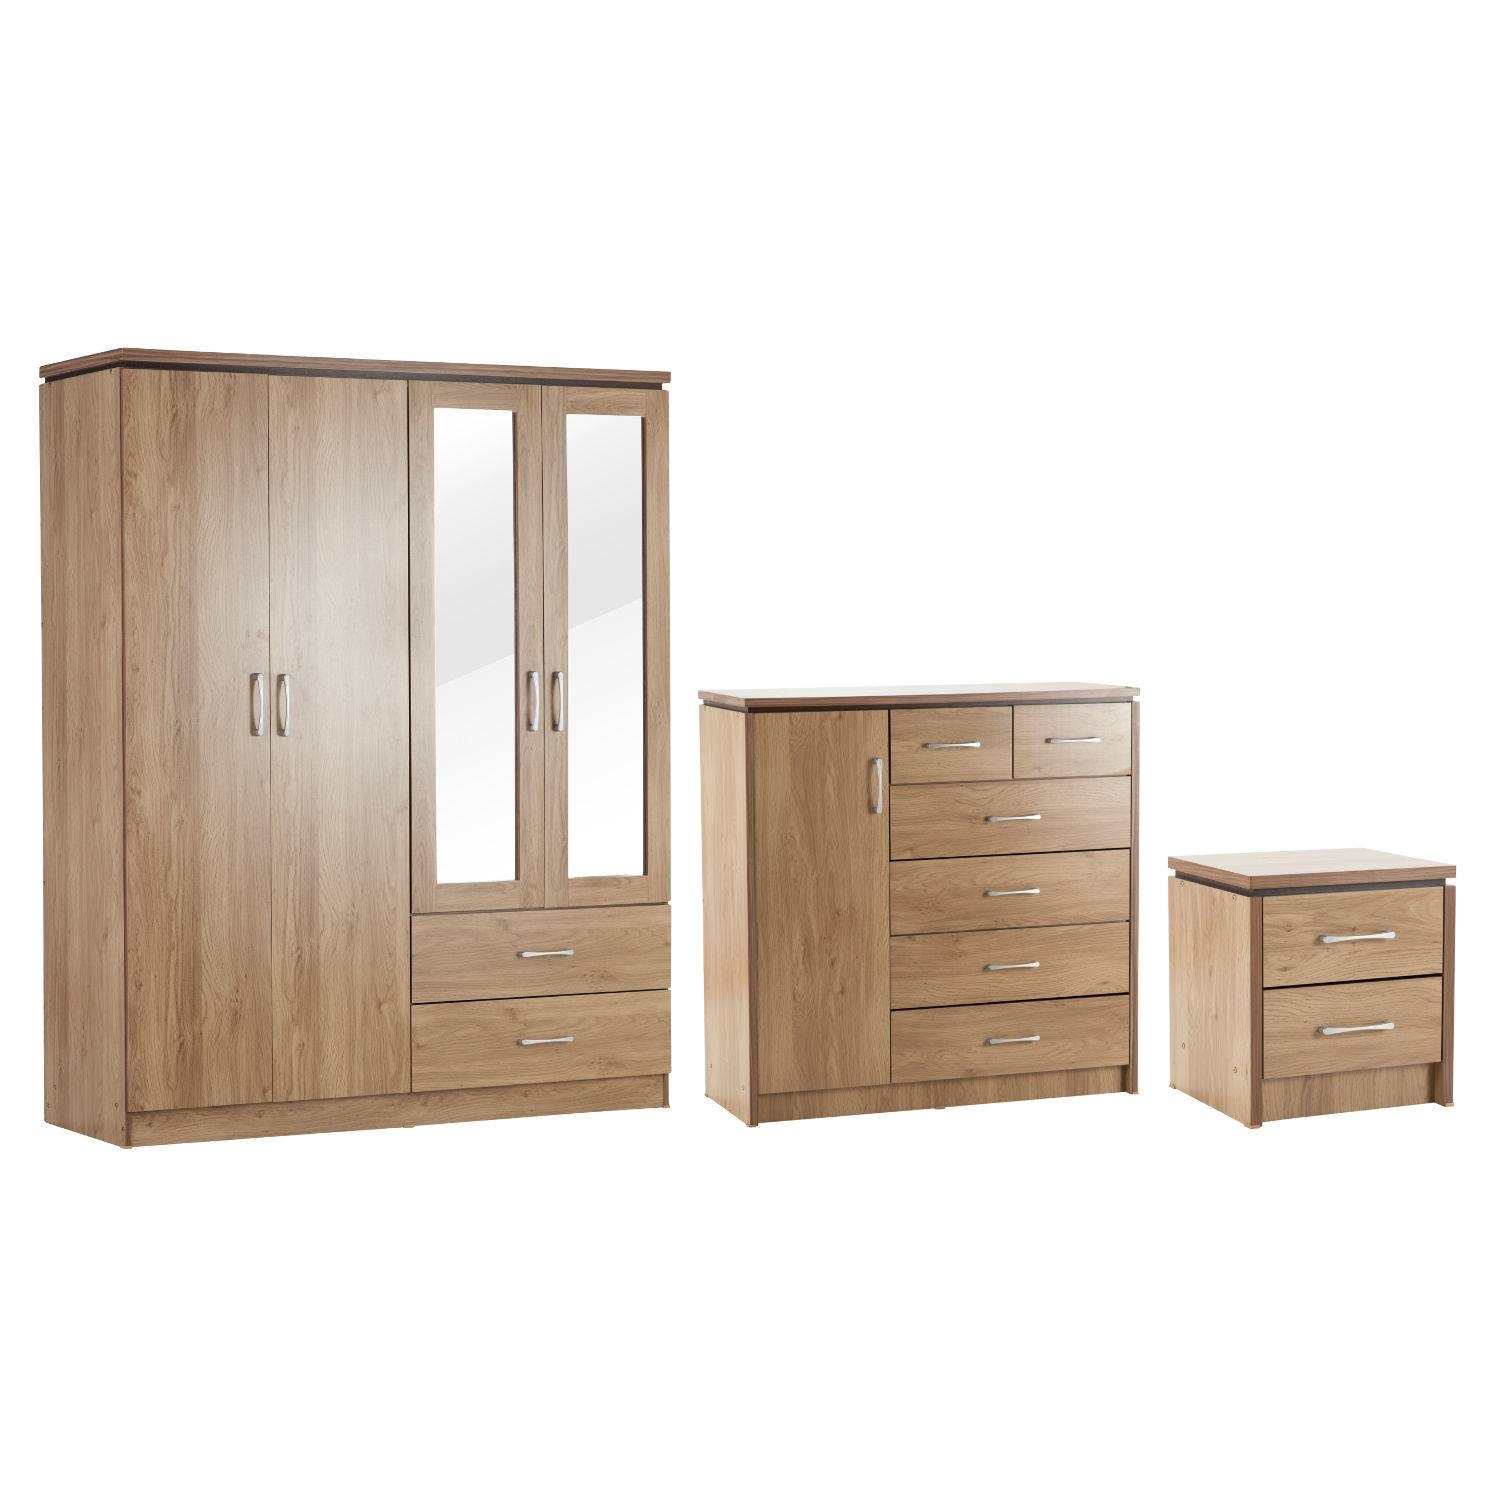 Charles 4 Door Wardrobe, 1 Door 6 Drawer Chest And Bedside Set Pertaining To Wardrobes And Chest Of Drawers Combined (View 14 of 15)